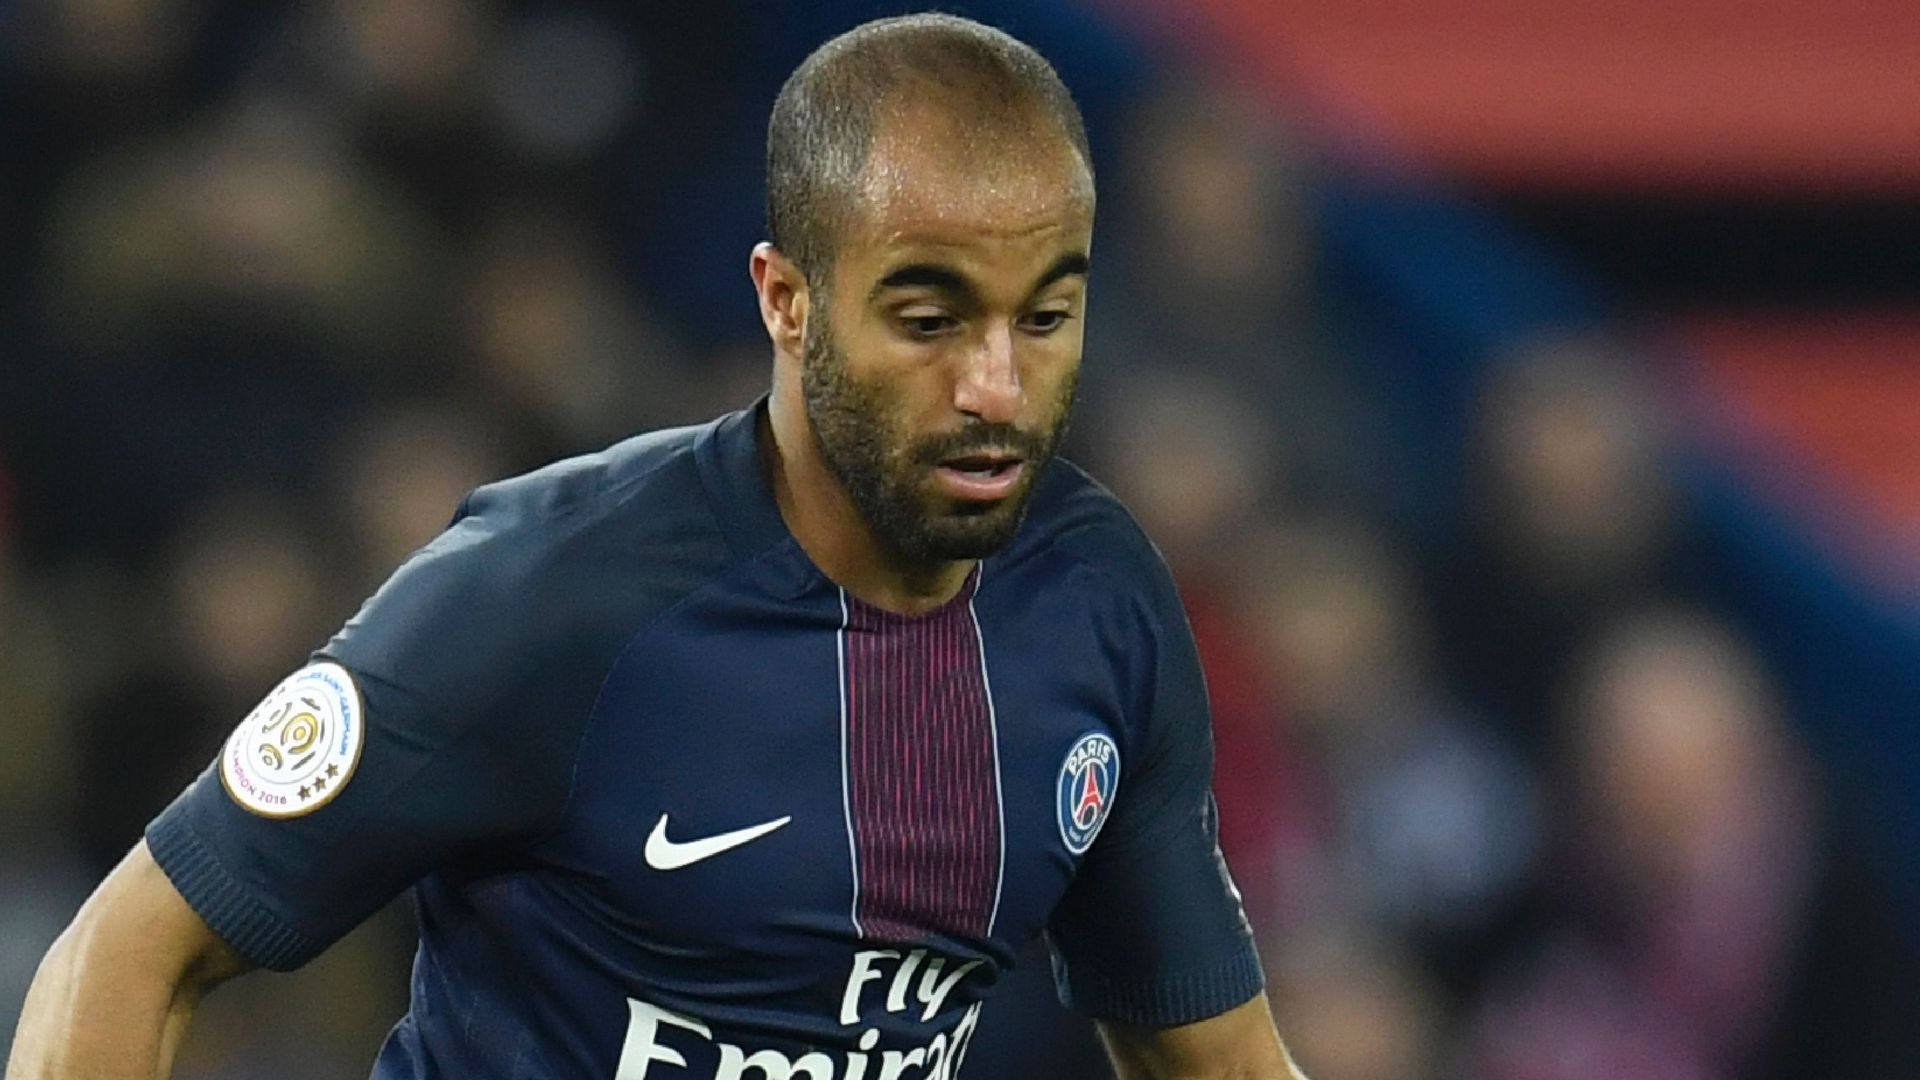 lucas moura psg 1k5cp4eytk82c1210kf524yj4a - ROUND-UP of 30/1/2018 TRANSFER NEWS, DONE DEALS AND RUMOURS